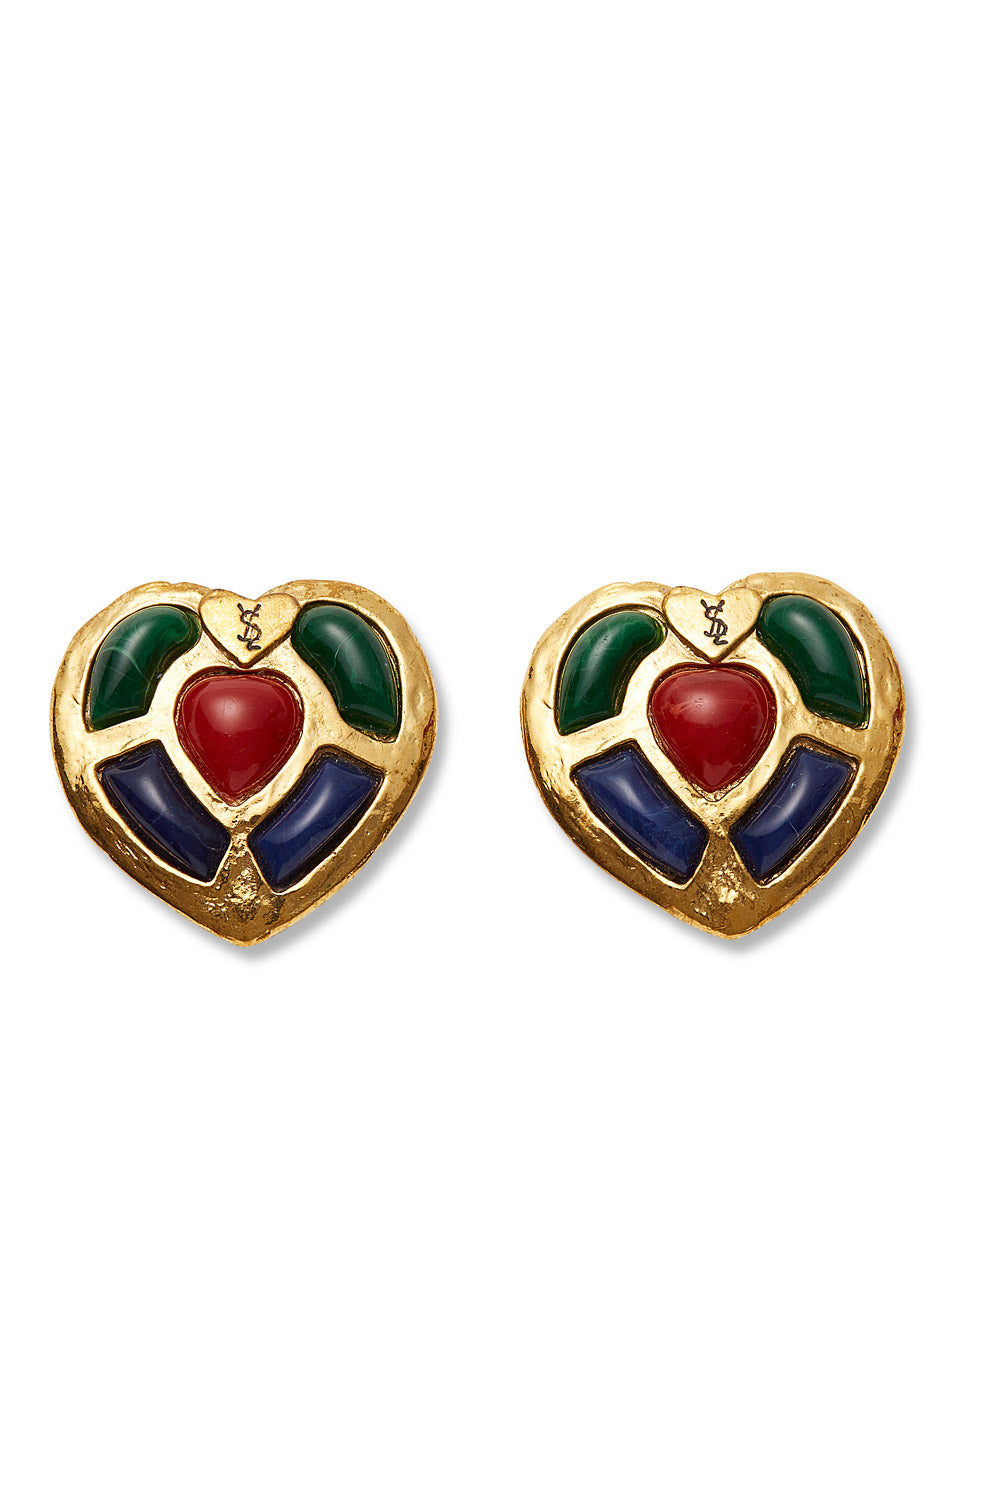 Yves Saint Laurent<br>1980's cabochon inset heart shaped logo earrings